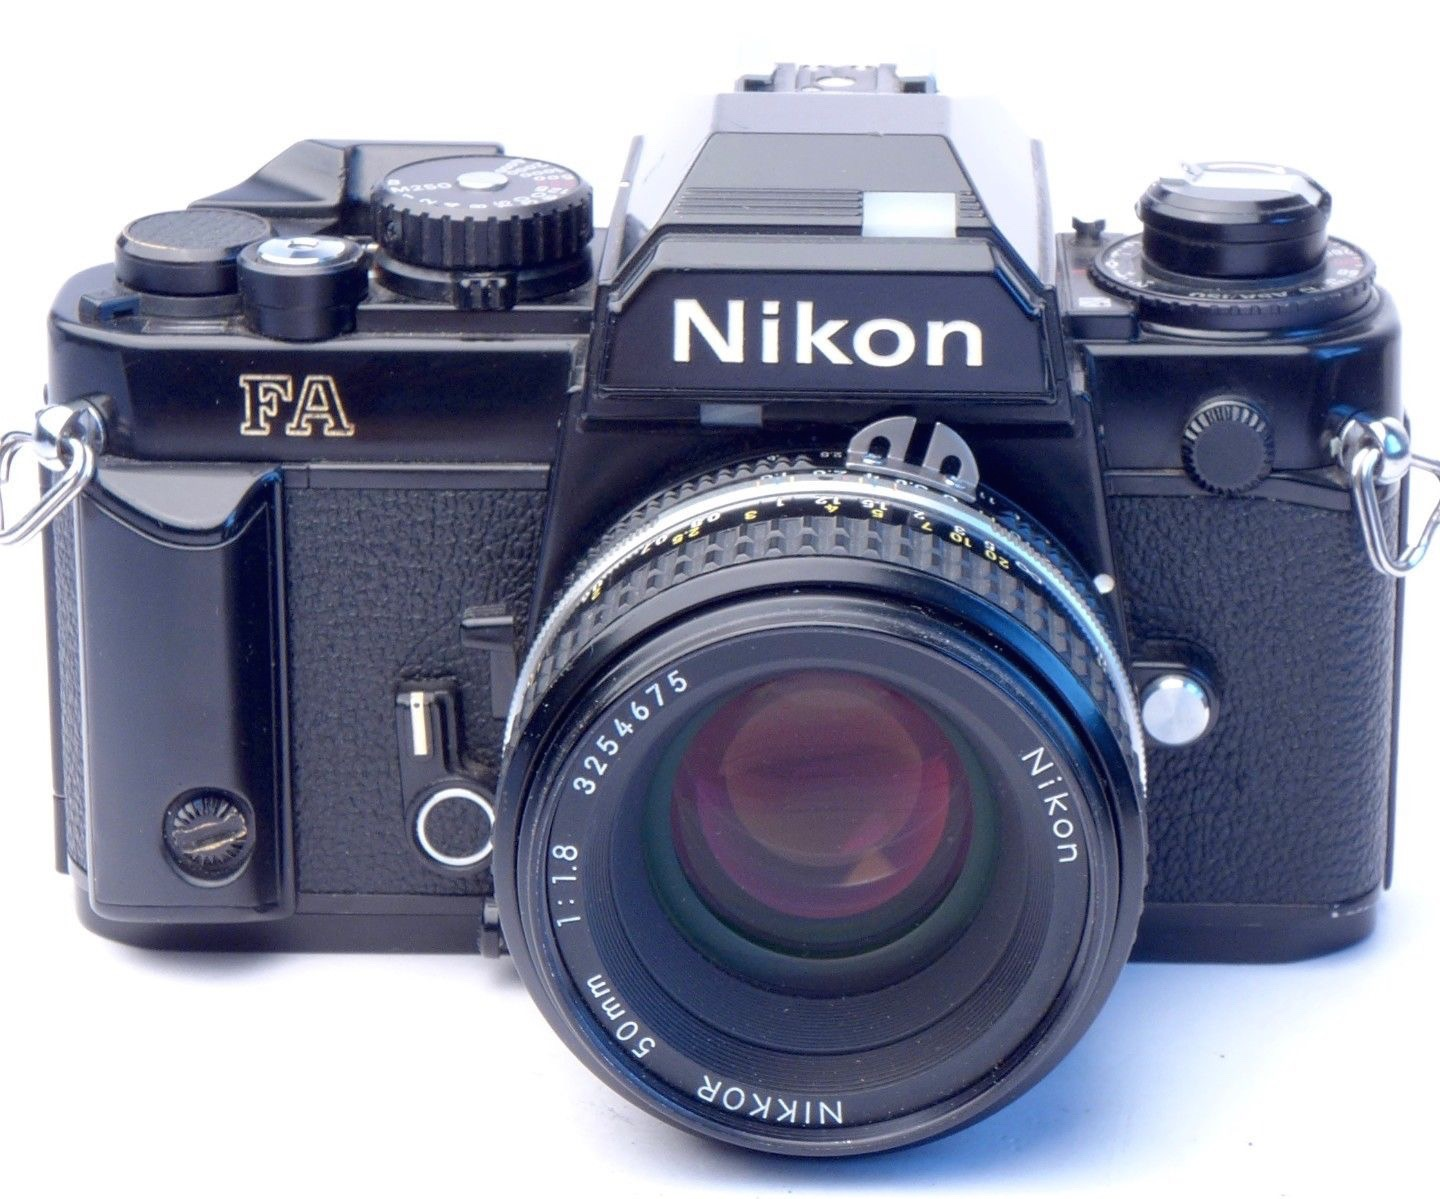 Nikon FA with 50mm f/1.8 Nikkor